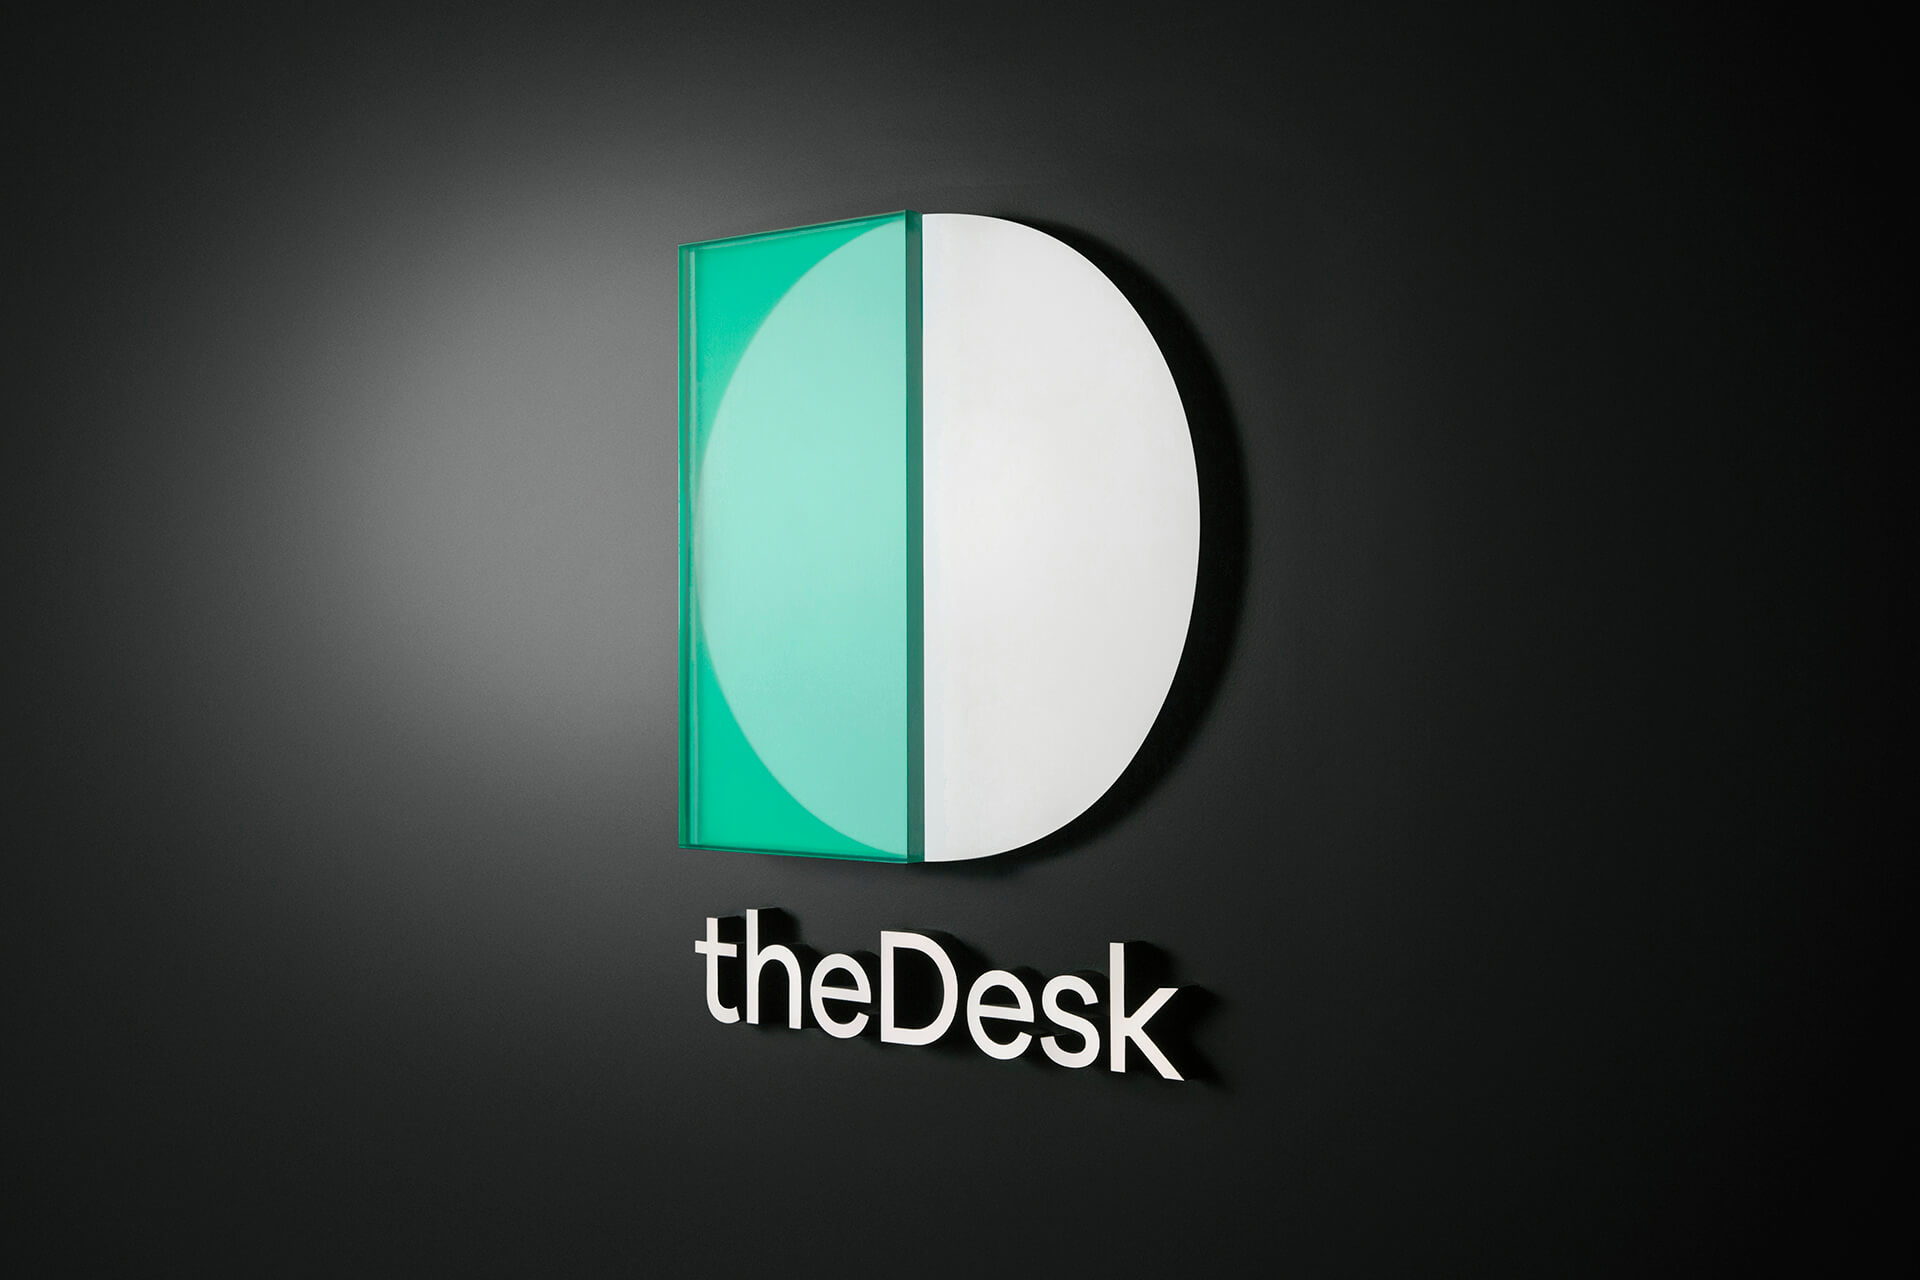 thedesk_15